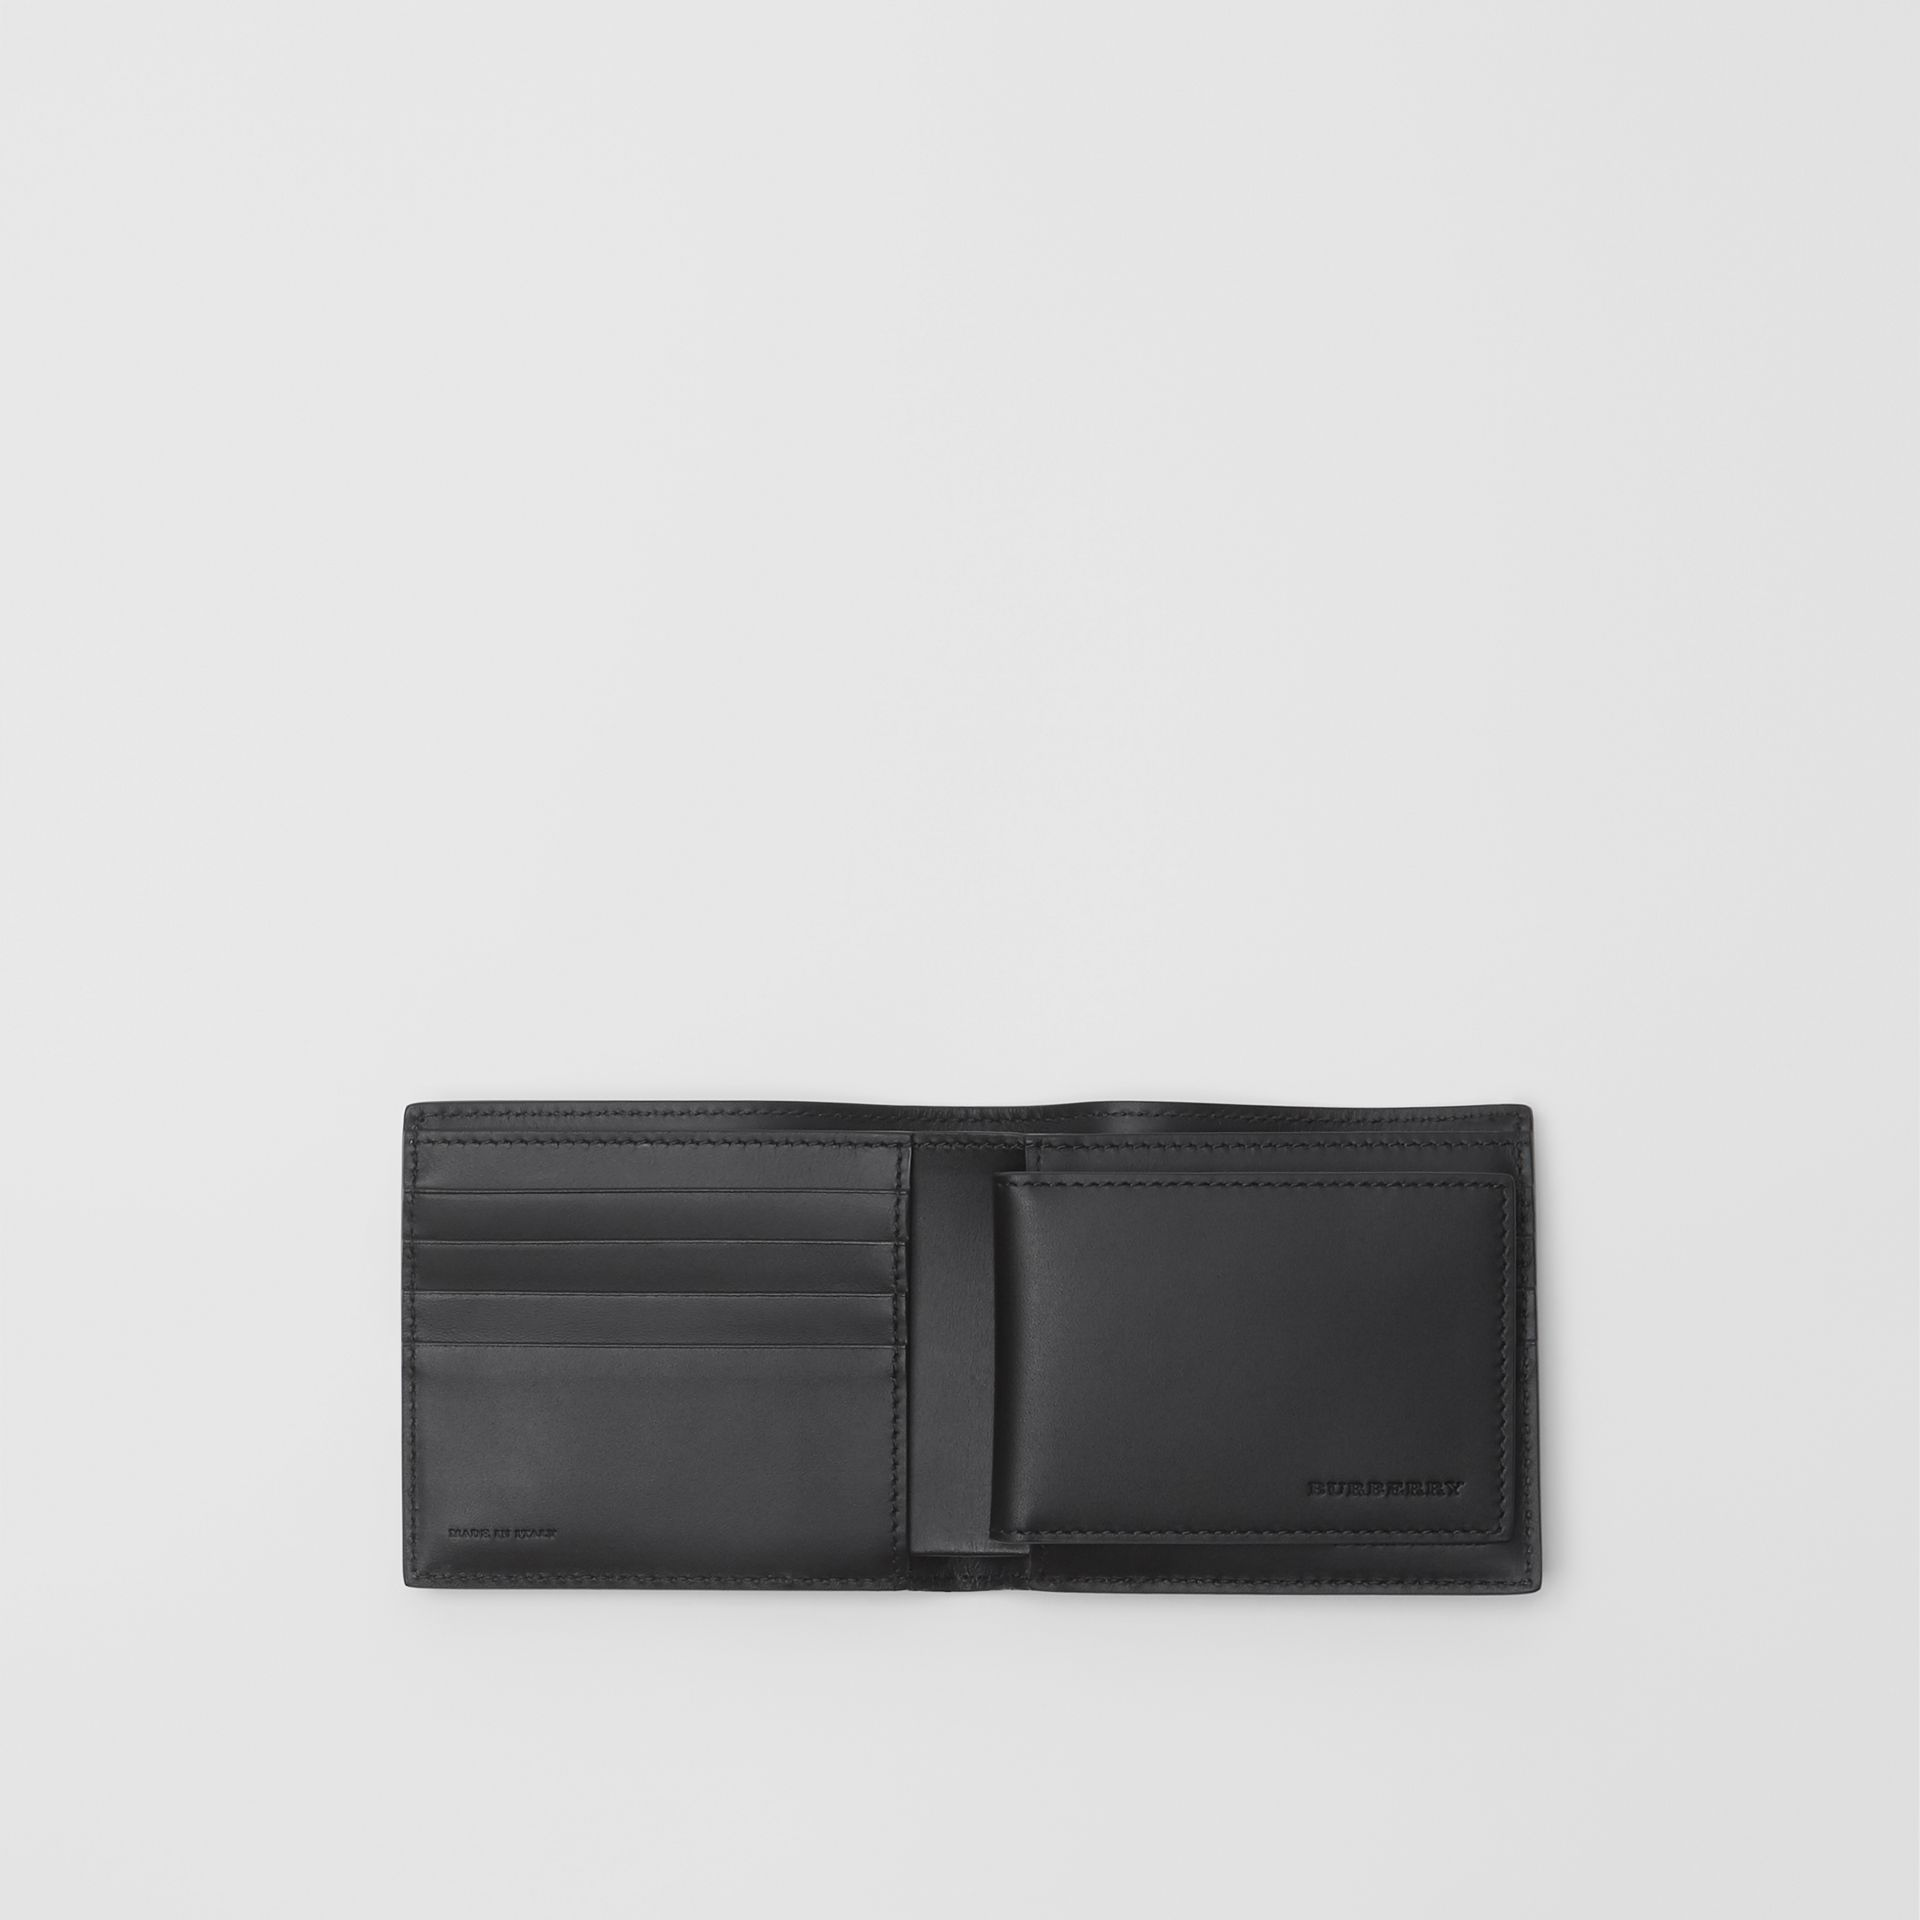 London Leather Bifold Wallet with ID Card Case in Navy - Men | Burberry United States - gallery image 2